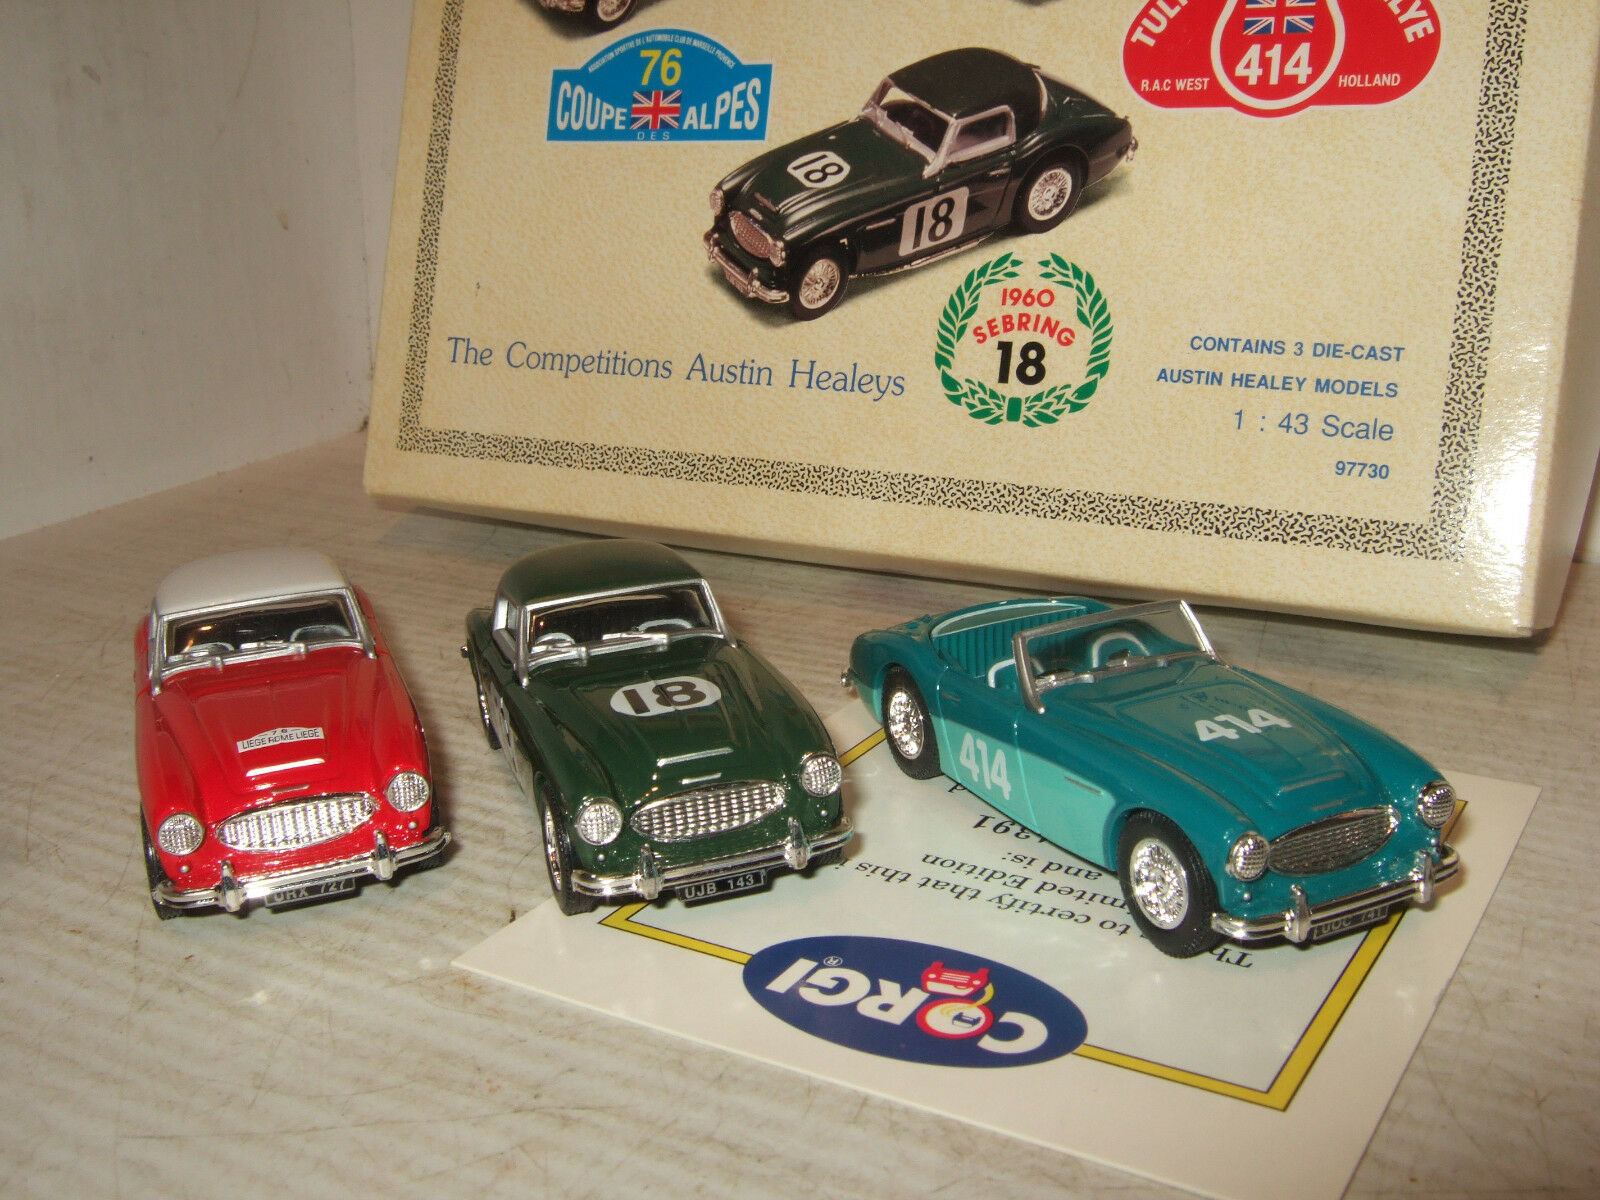 Corgi 97730 Austin Healey Competitions set of 3 models in 1 43 Scale